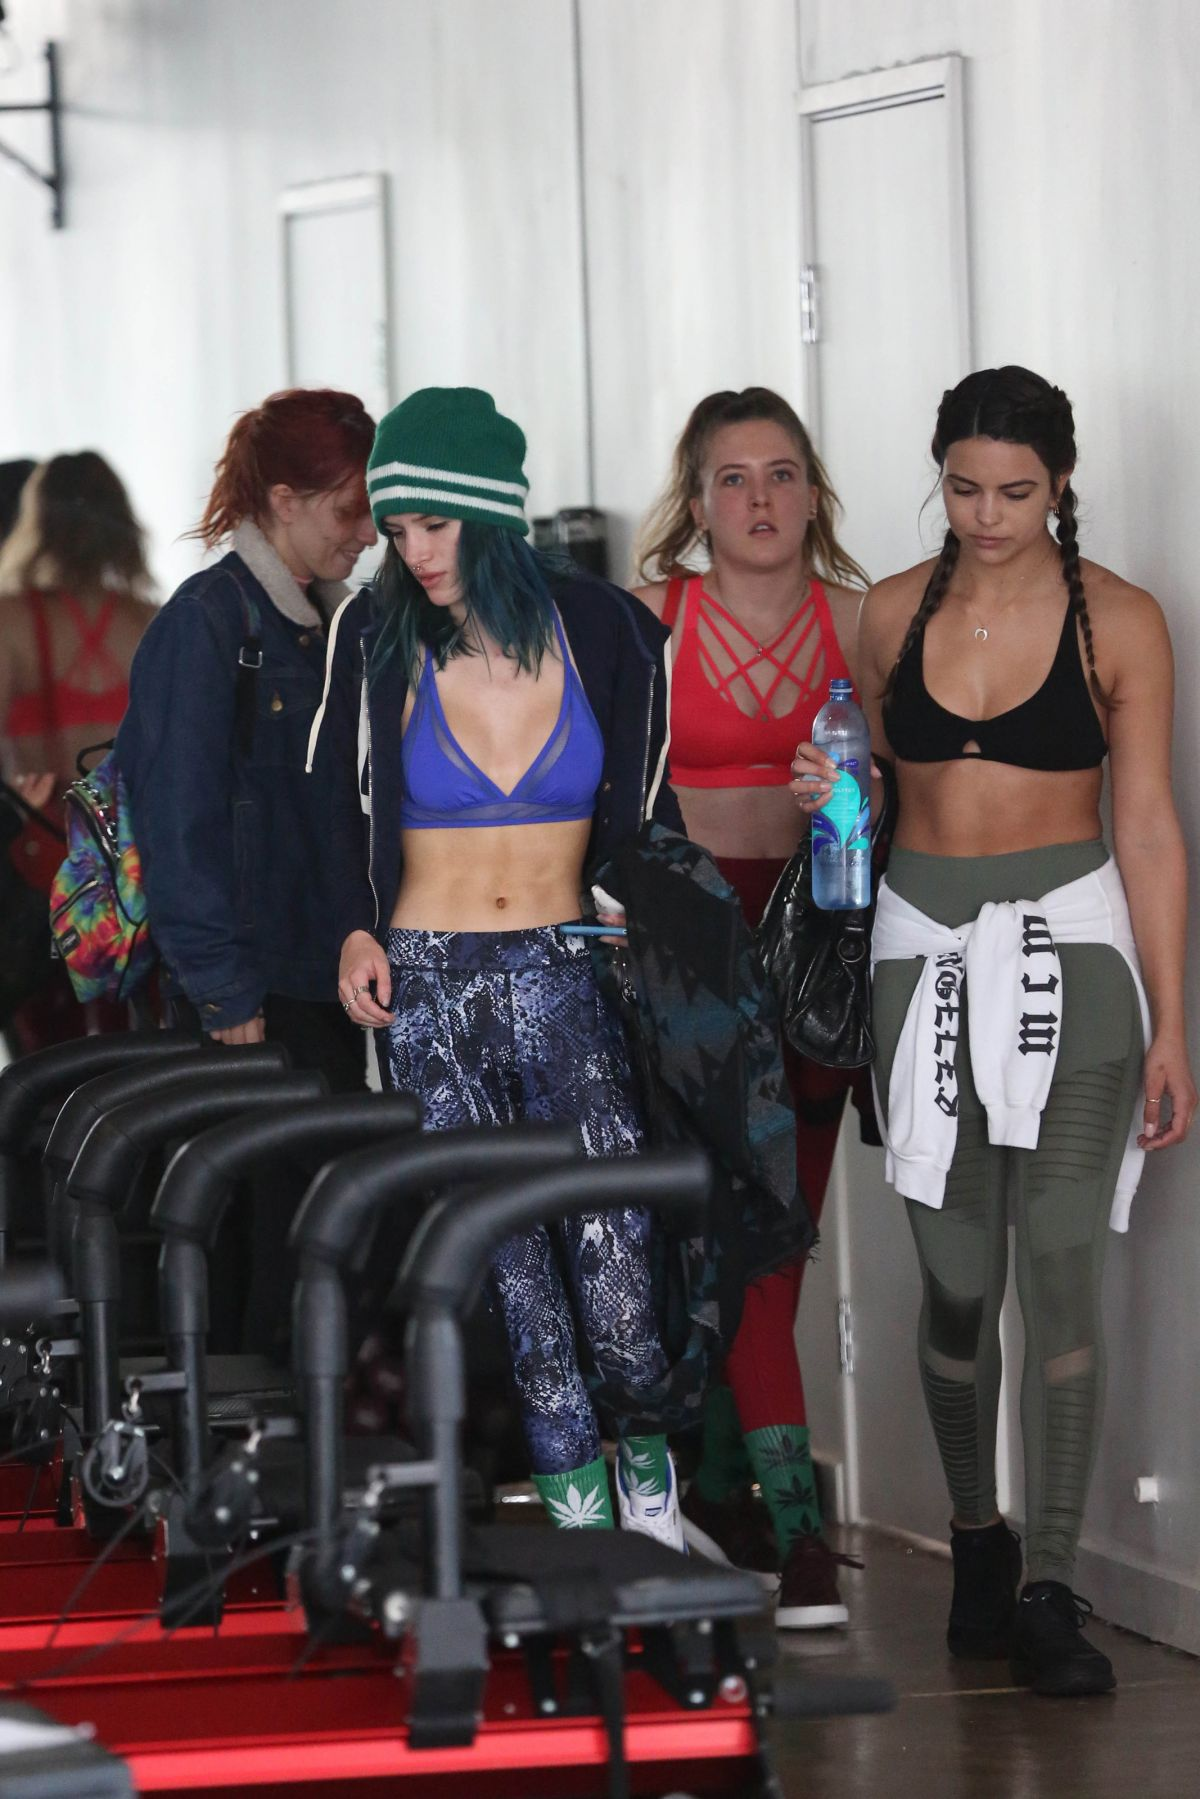 BELLA and DANI THORNE at a Gym in Los Angeles 01/05/2017